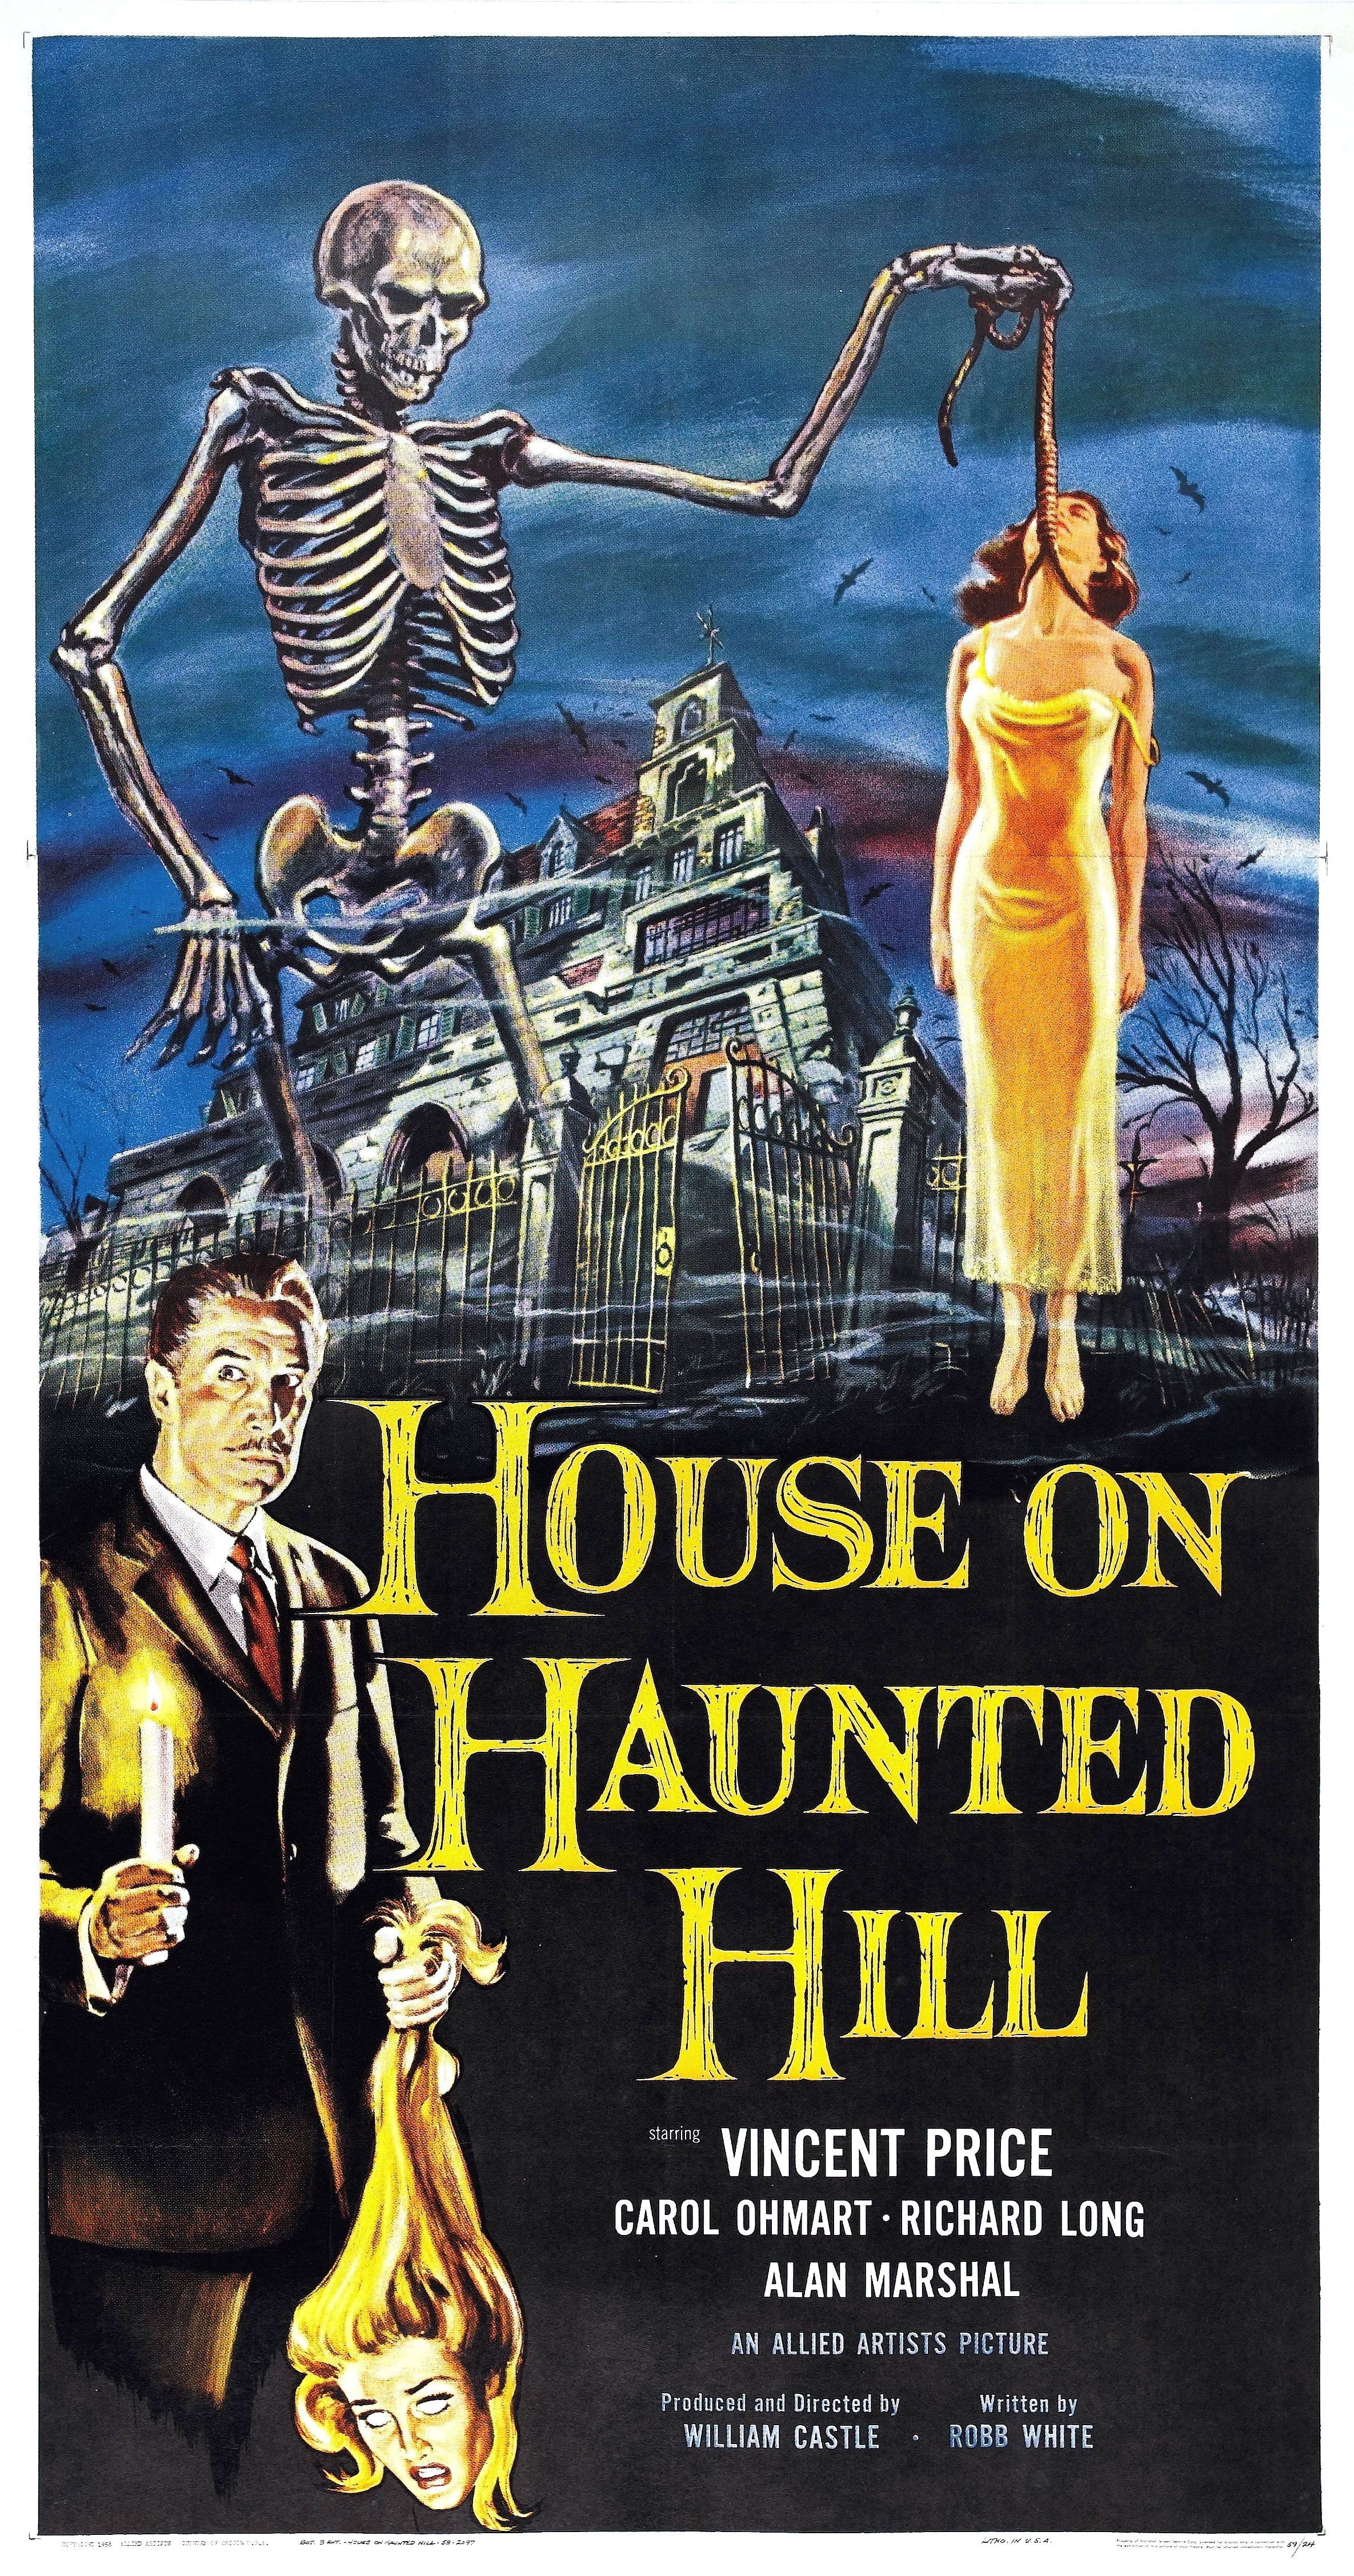 house on haunted hill Poster for House on Haunted Hill